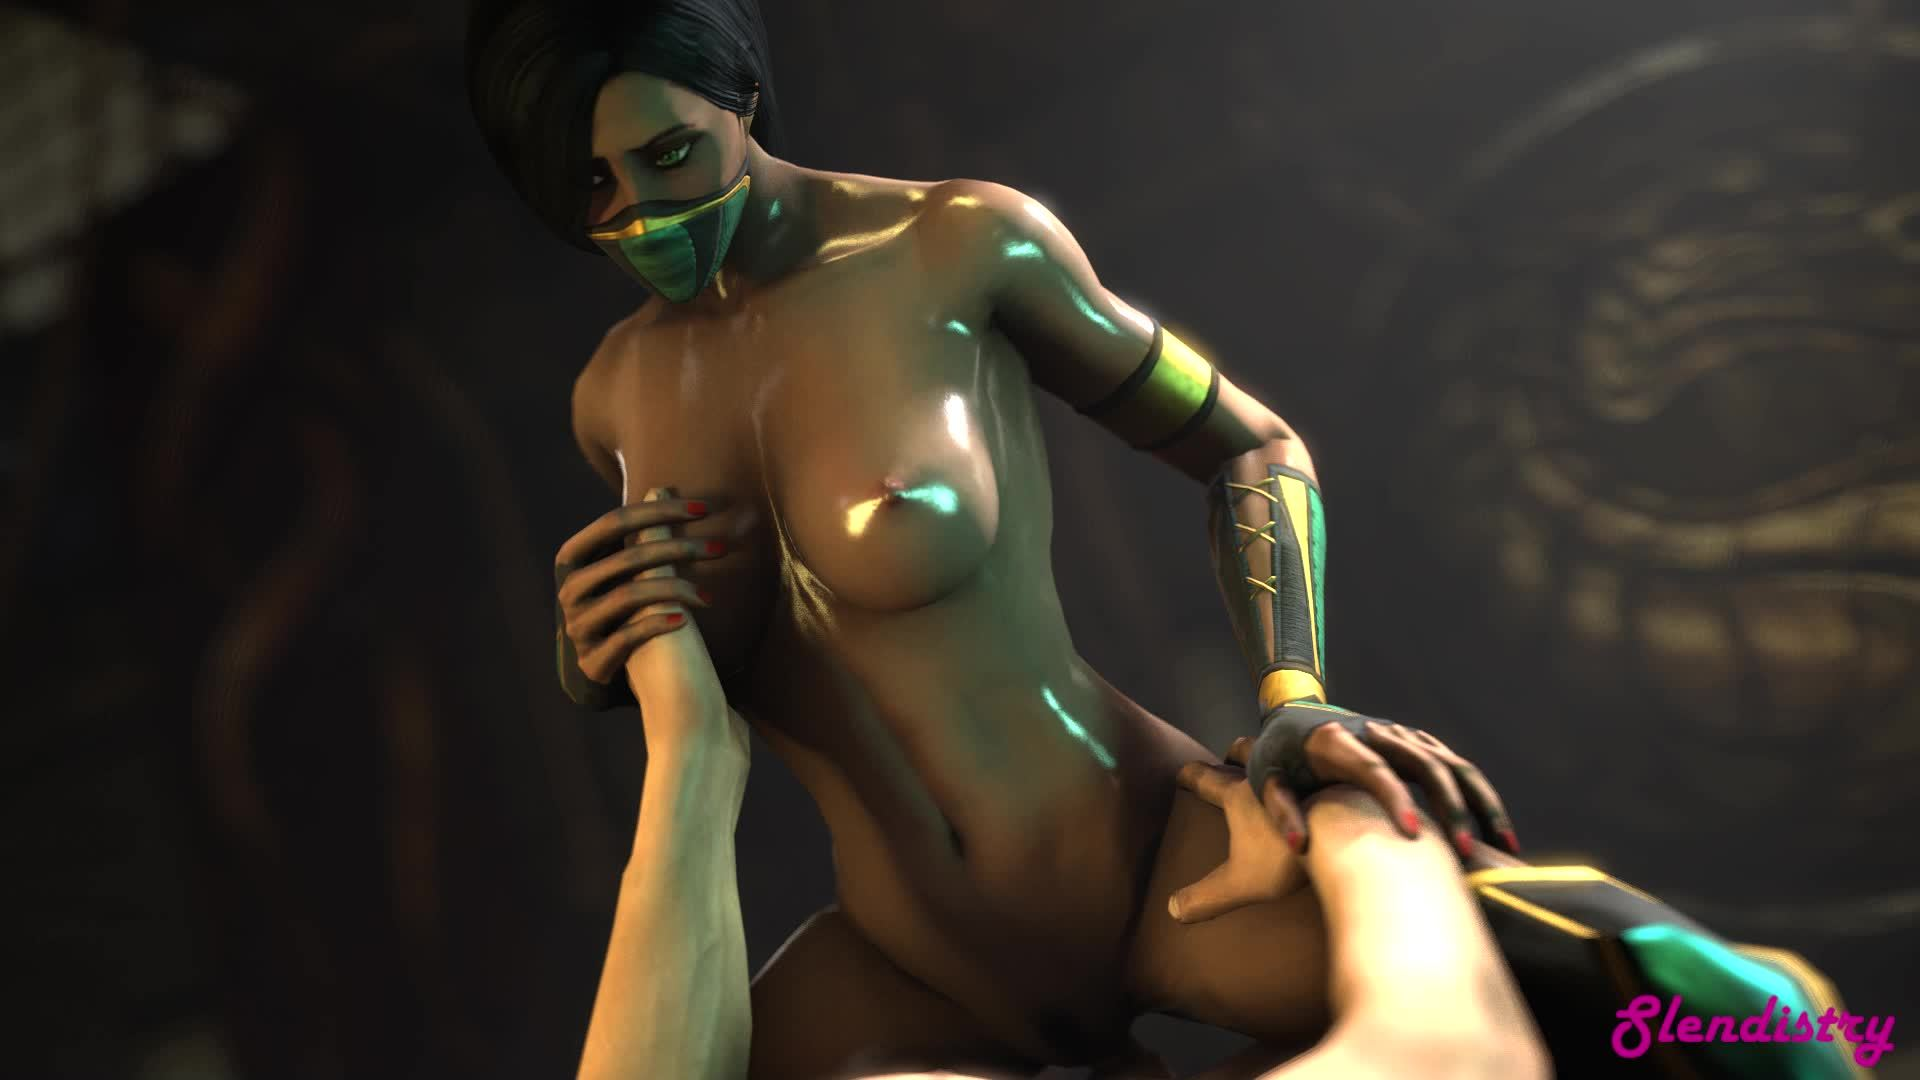 mortal kombat girls sex